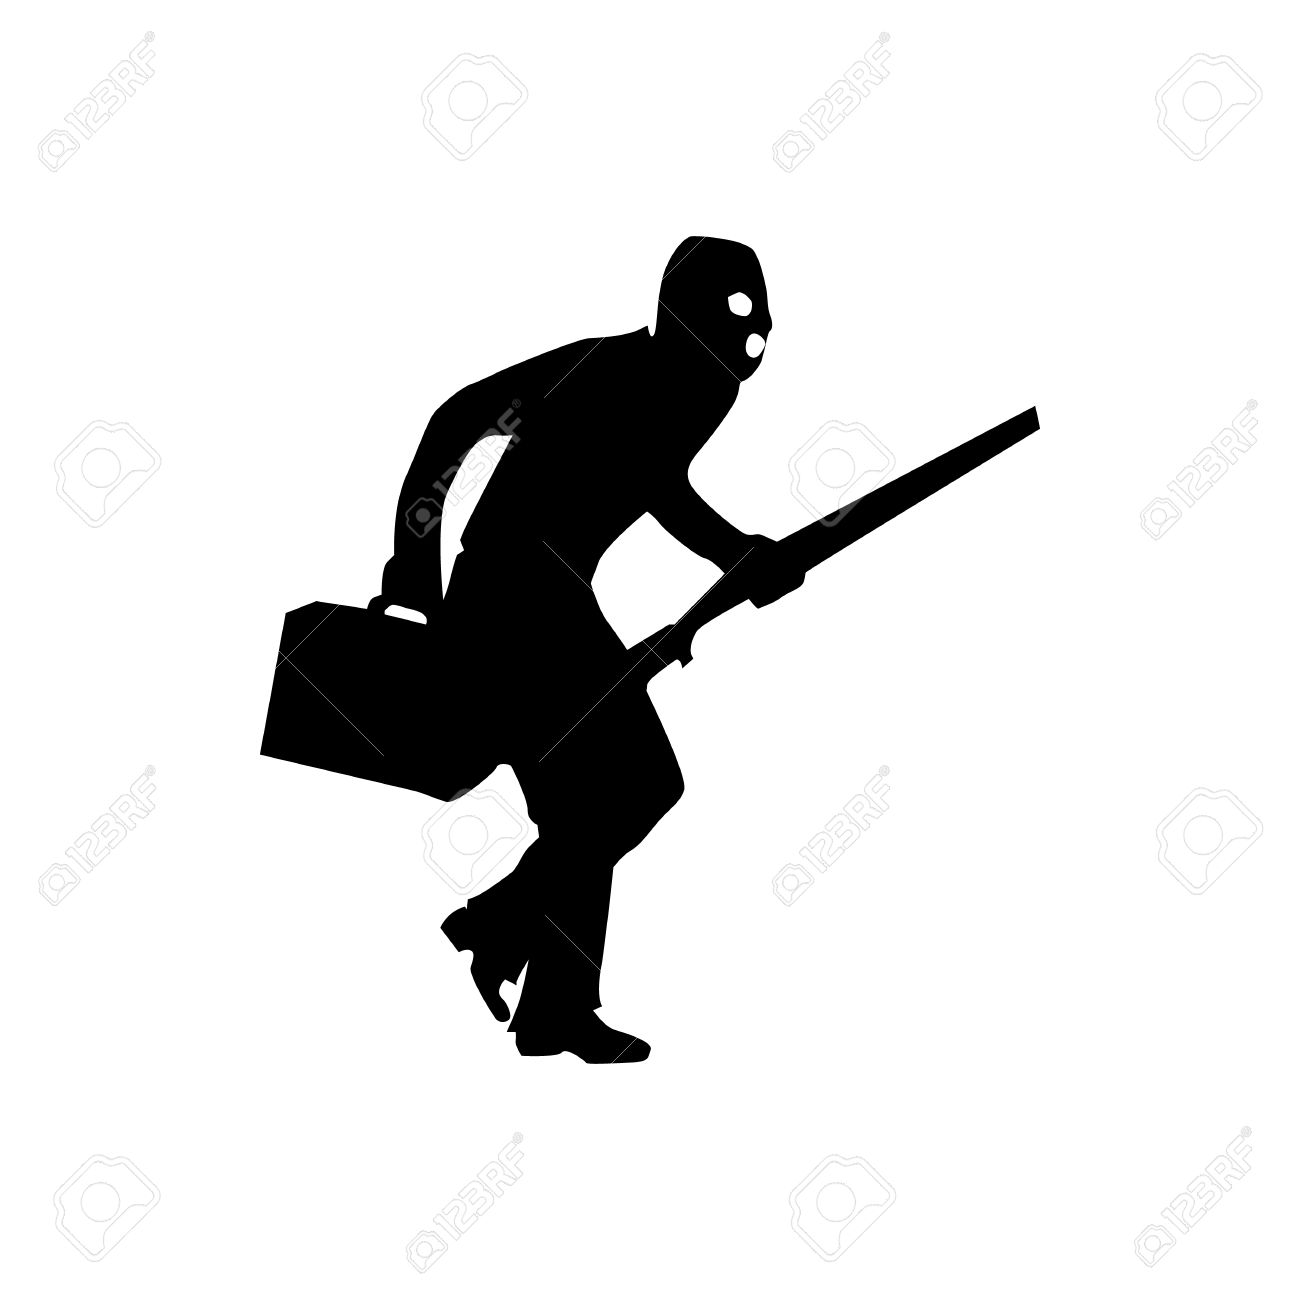 Robber background clipart clipart black and white Robber Silhouette Black Isolated On White Background Royalty Free ... clipart black and white